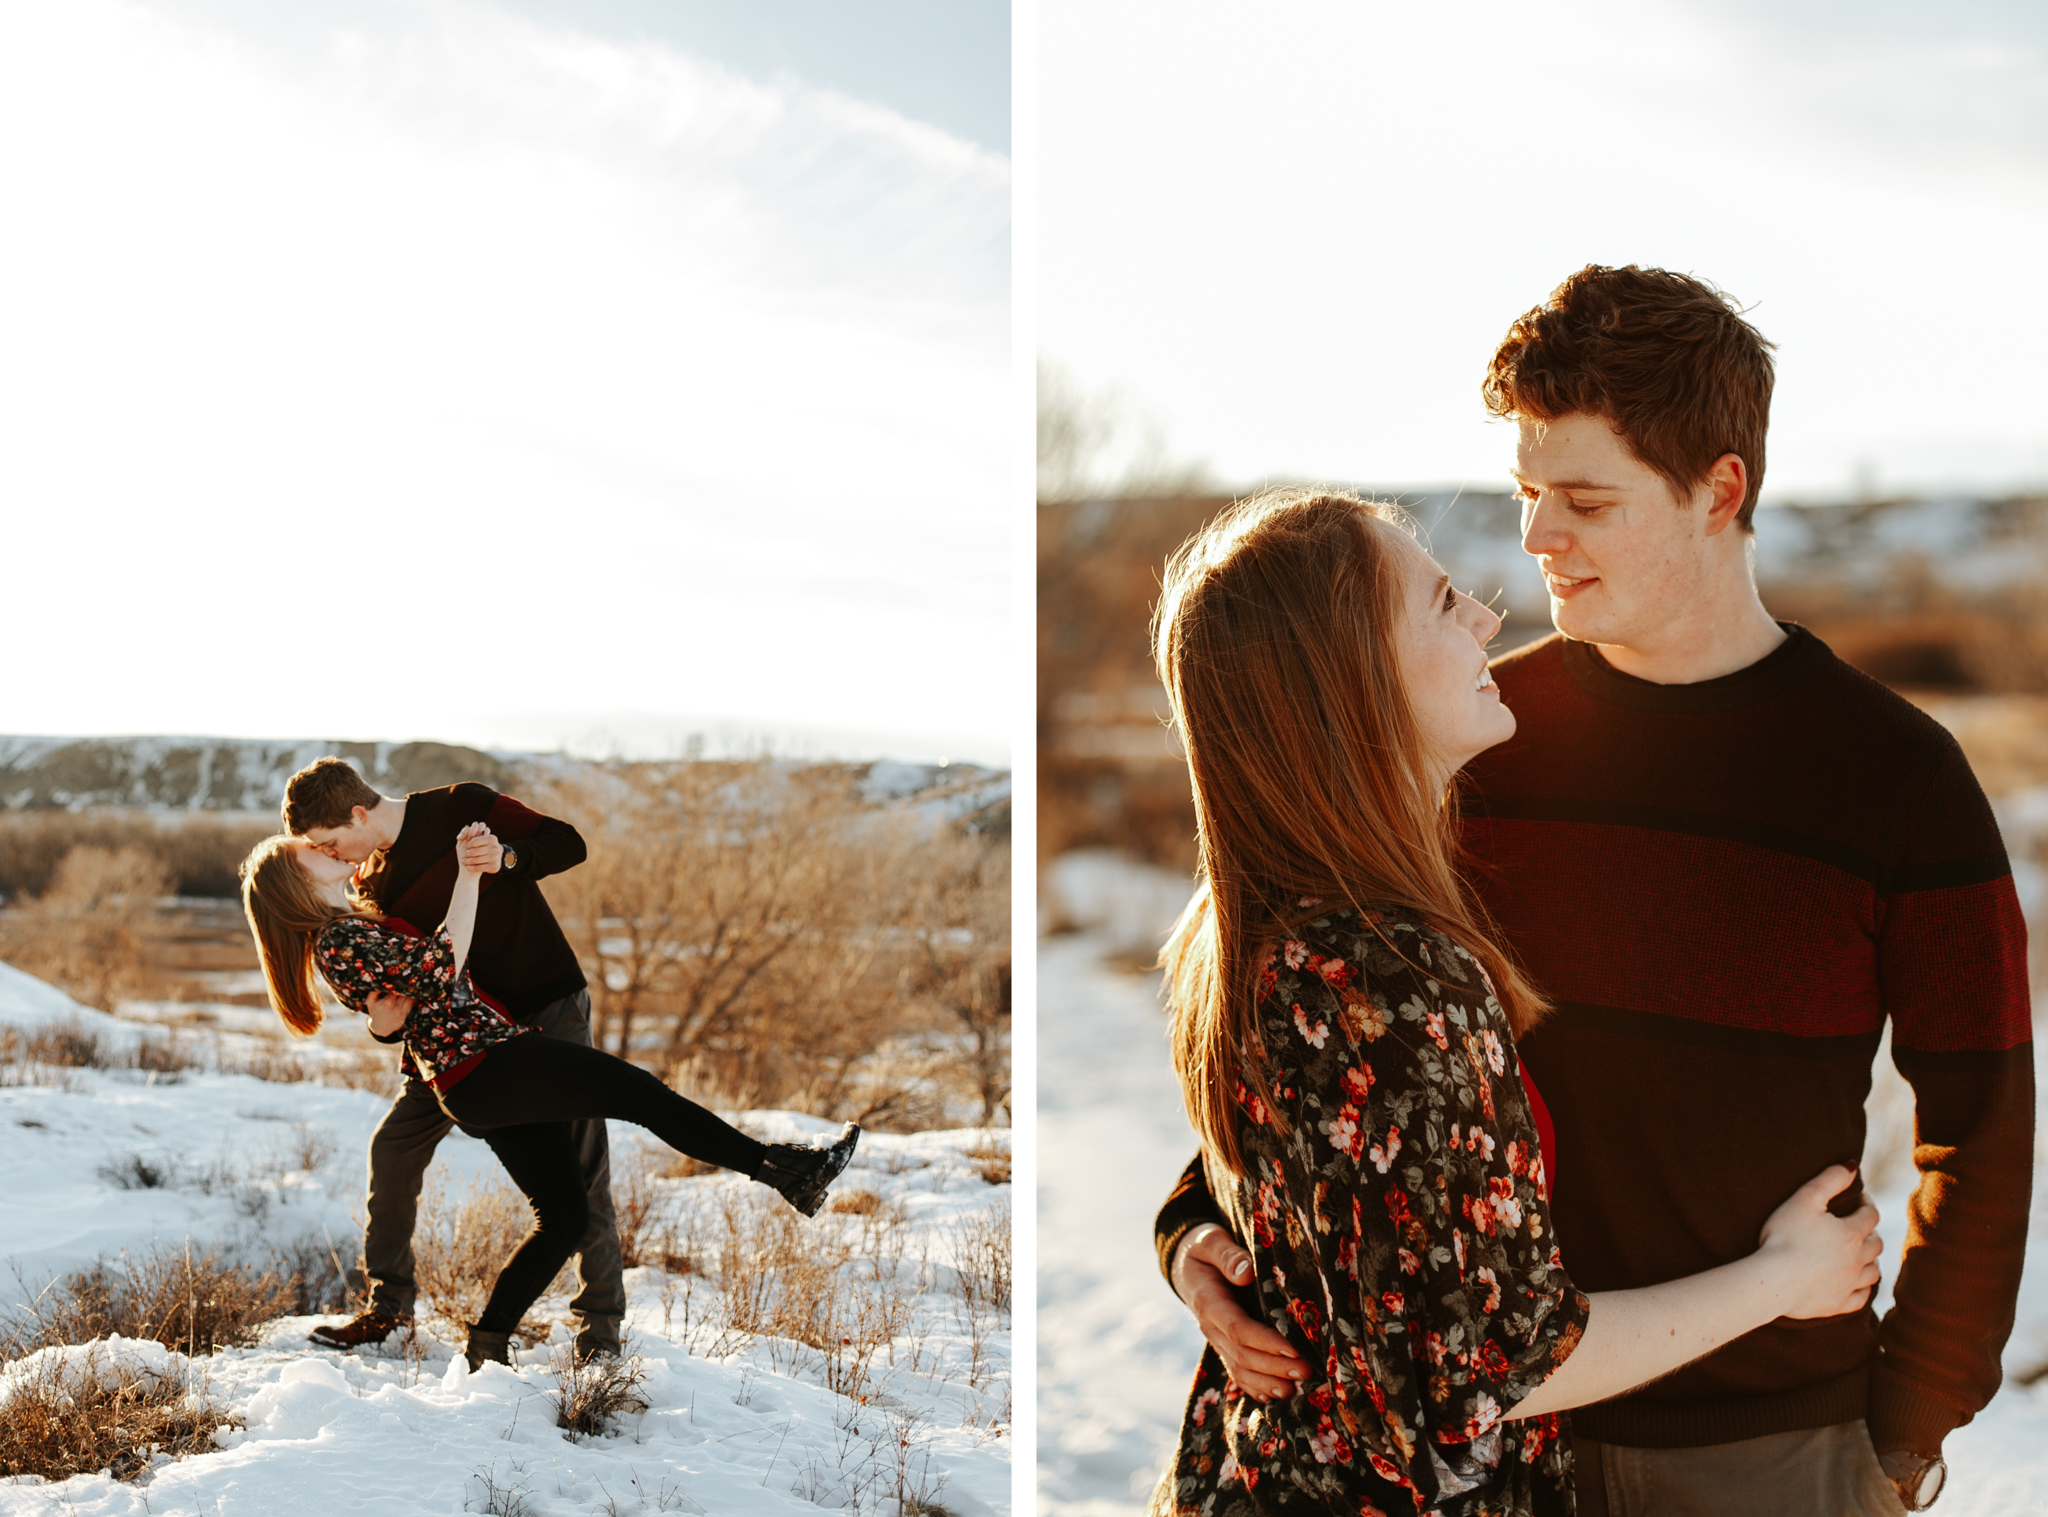 lethbridge-photographer-love-and-be-loved-photography-wedding-engagement-coulees-stuart-lacey-pavan-park-photo-image-picture-74.jpg